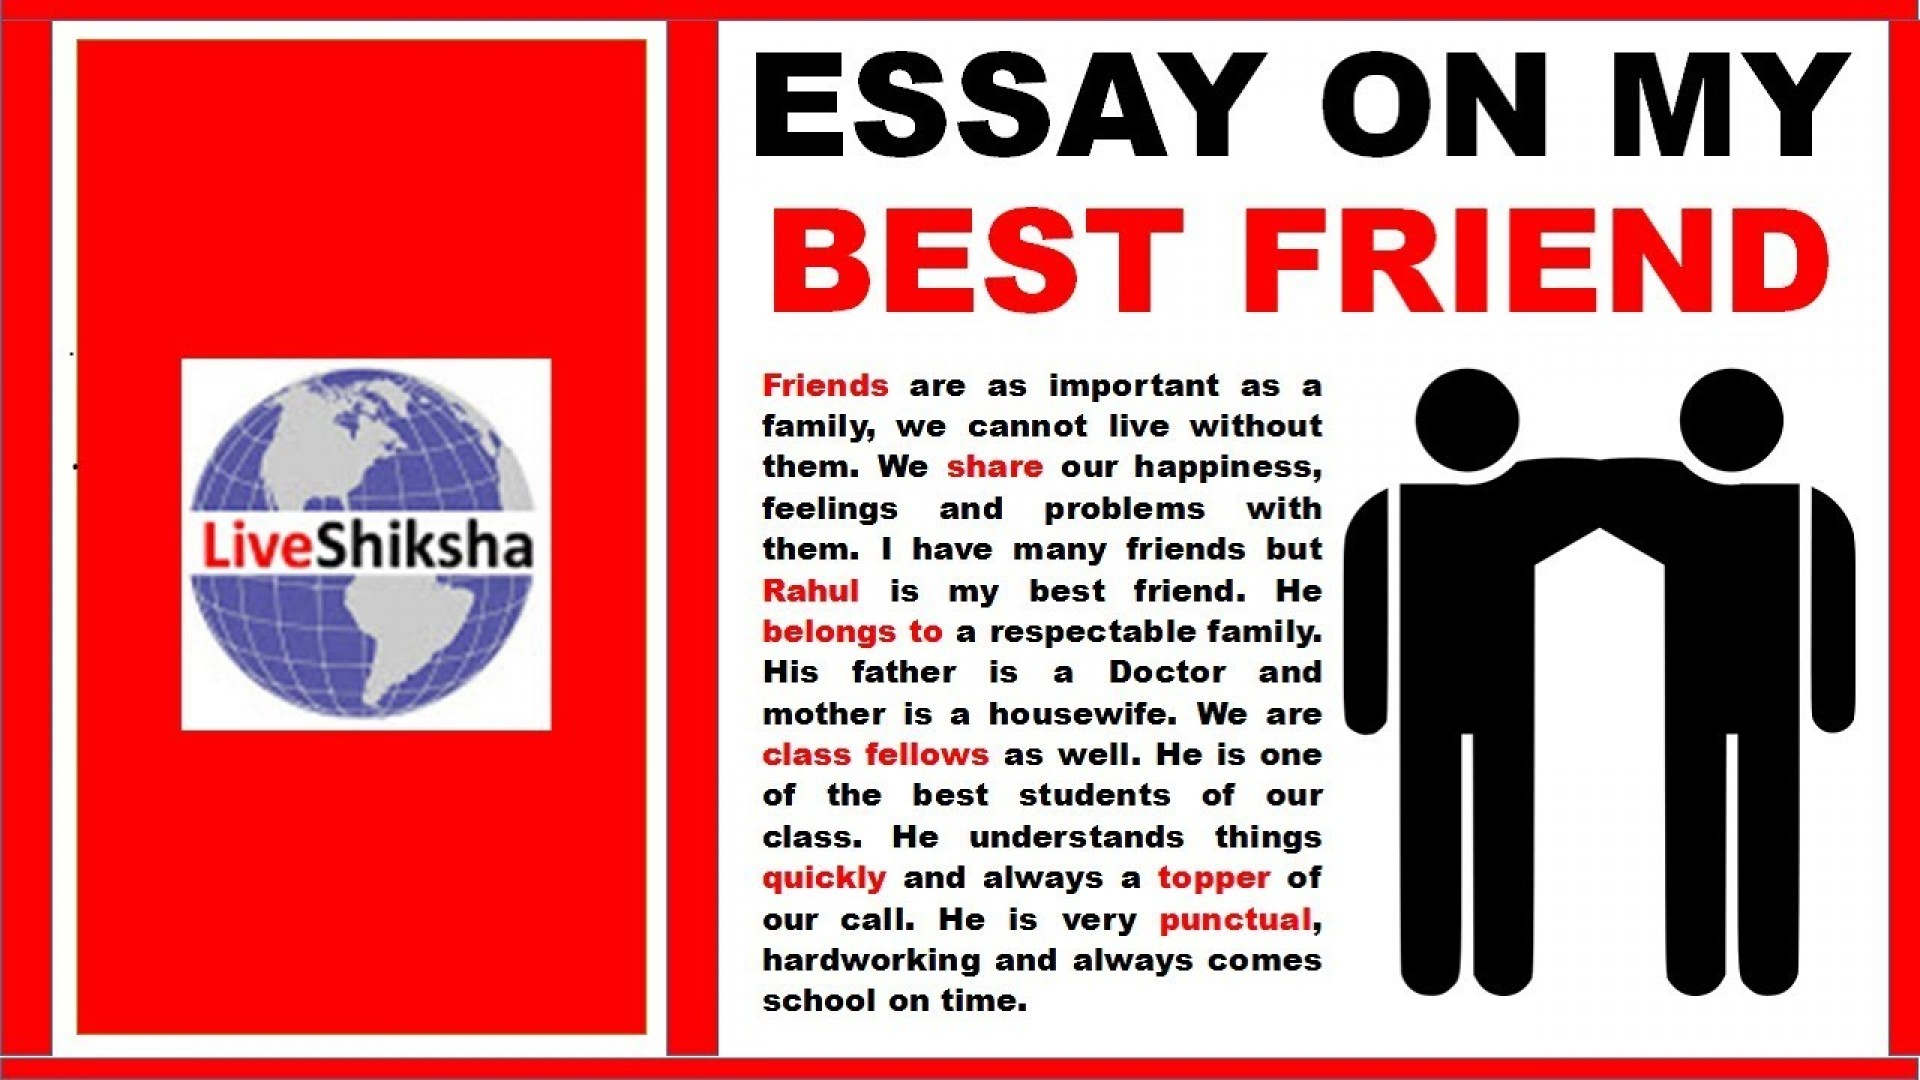 007 Maxresdefault Friends Essay Marvelous For Class 2 Introduction My Best Friend In Hindi 1920